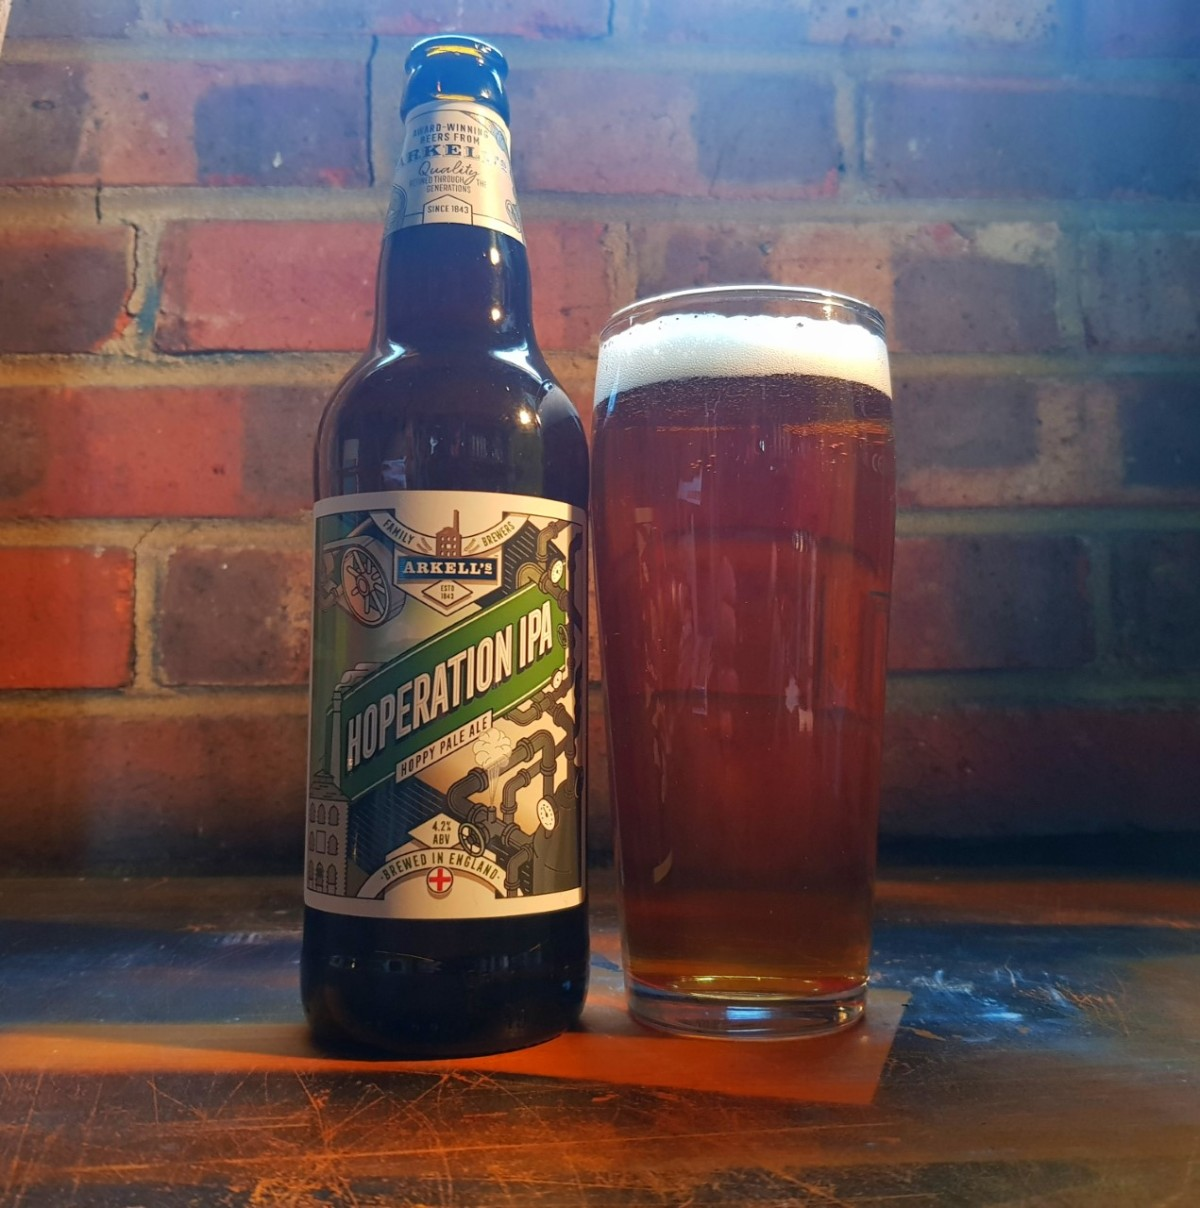 HOPERATION IPA